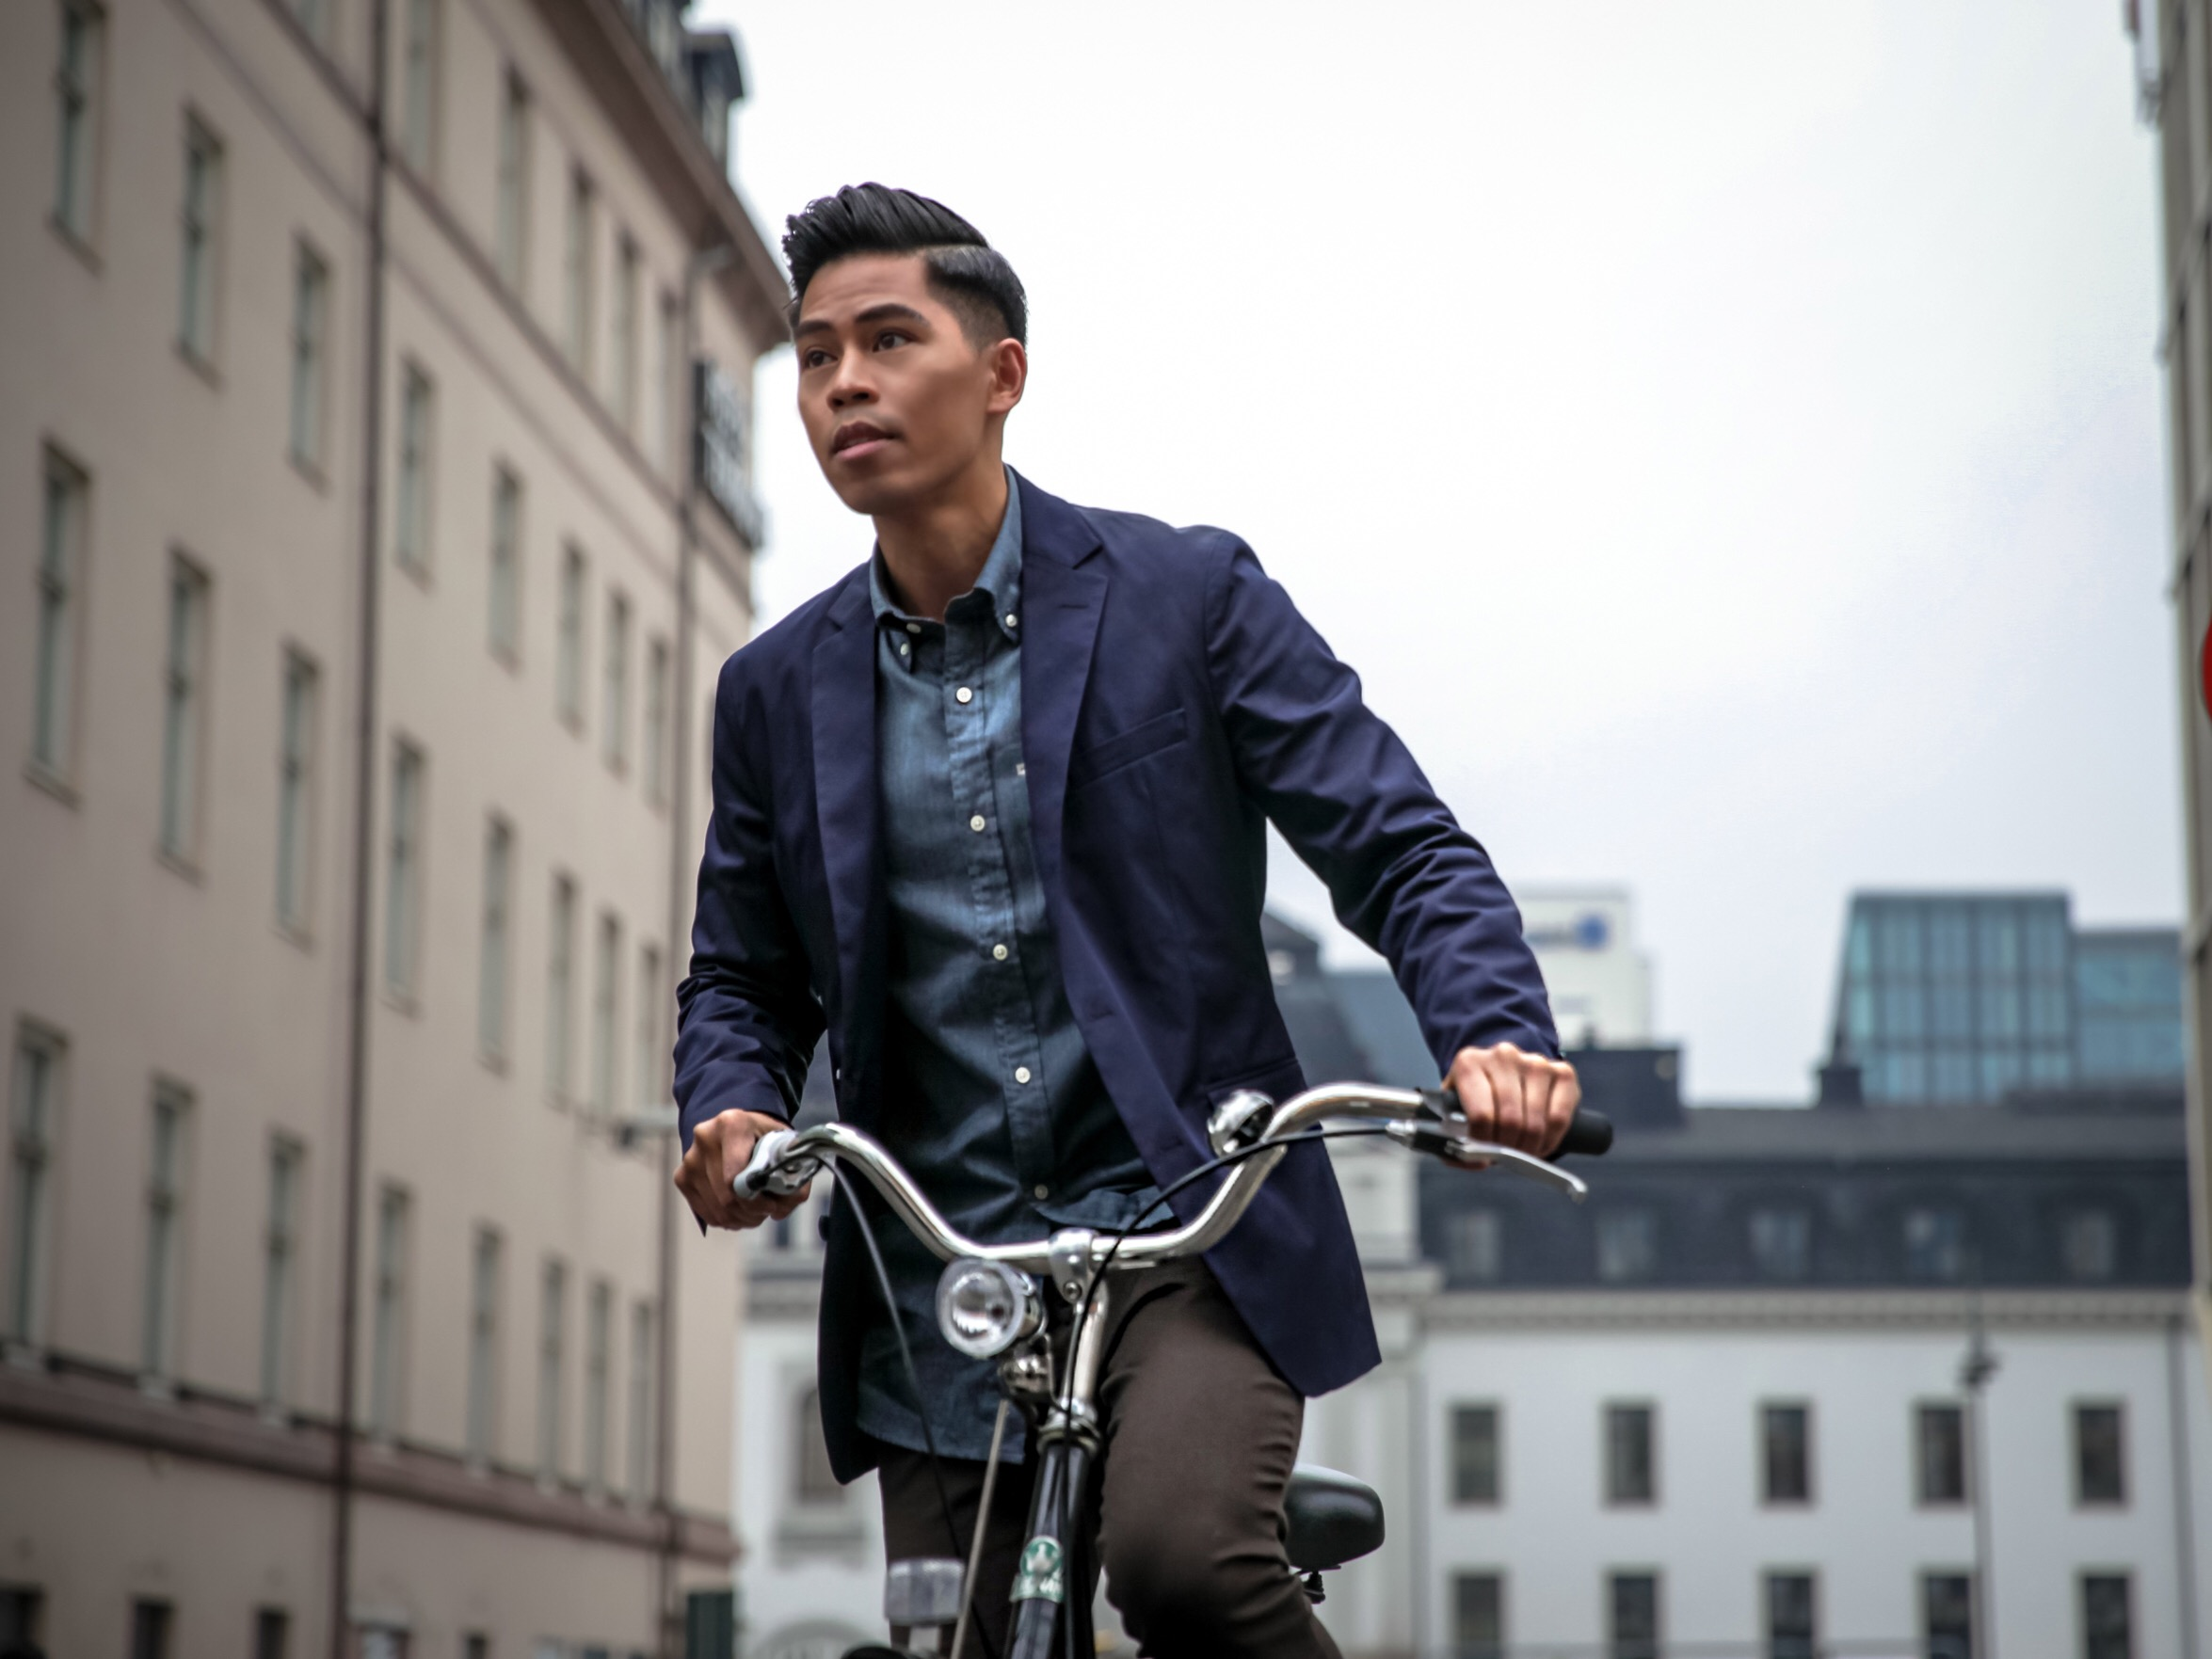 GANT Get Into Gear Commuter Capsule 2017